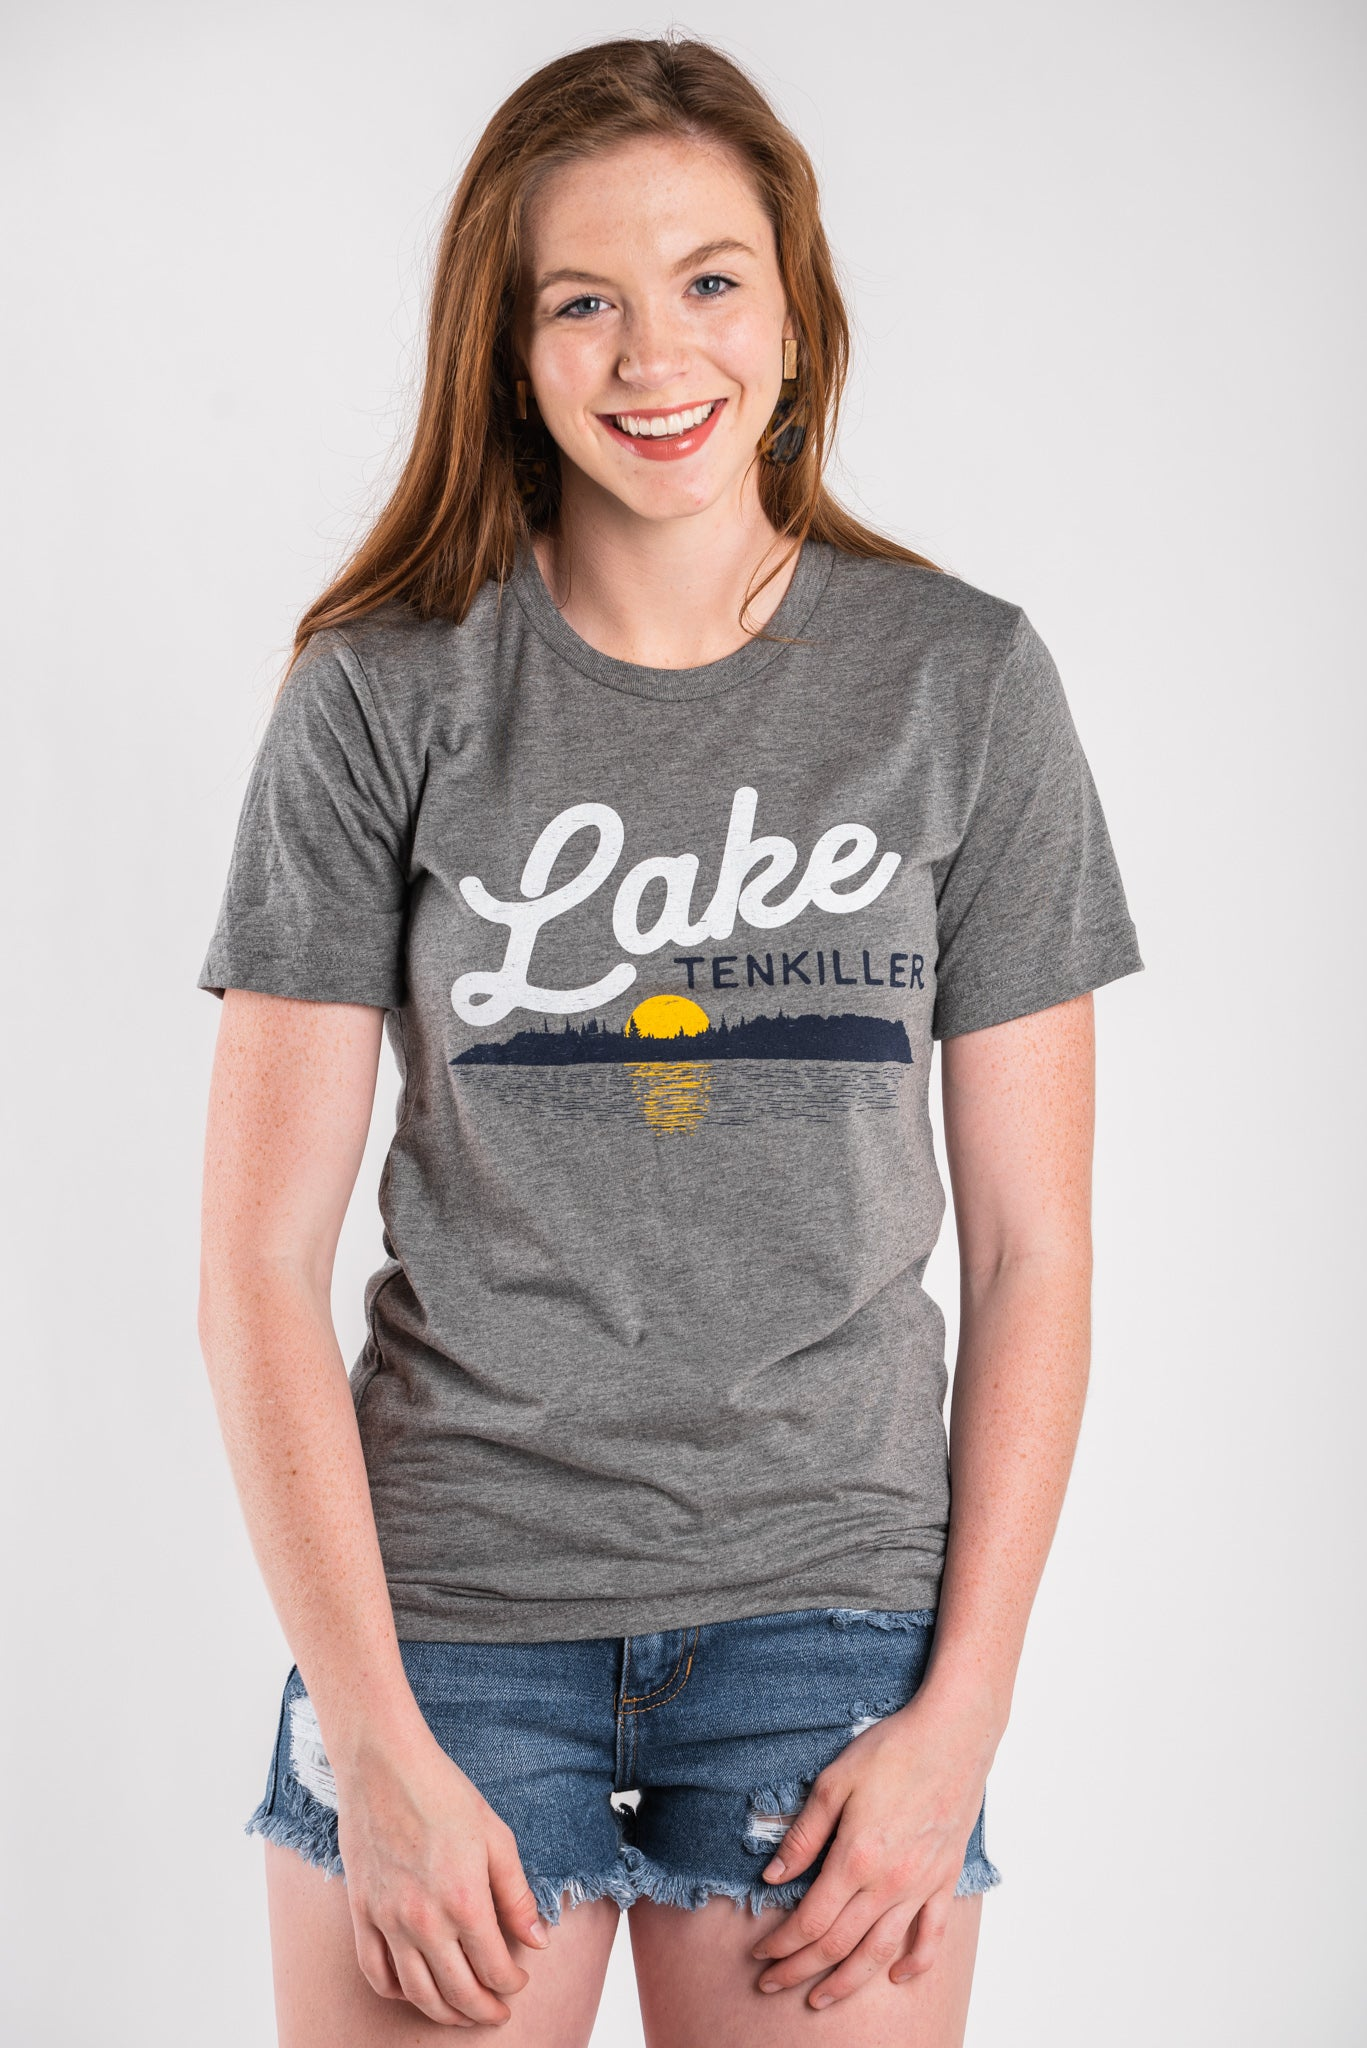 3af3064517b0c Lake Tenkiller unisex short sleeve t-shirt grey - Lush Fashion Lounge